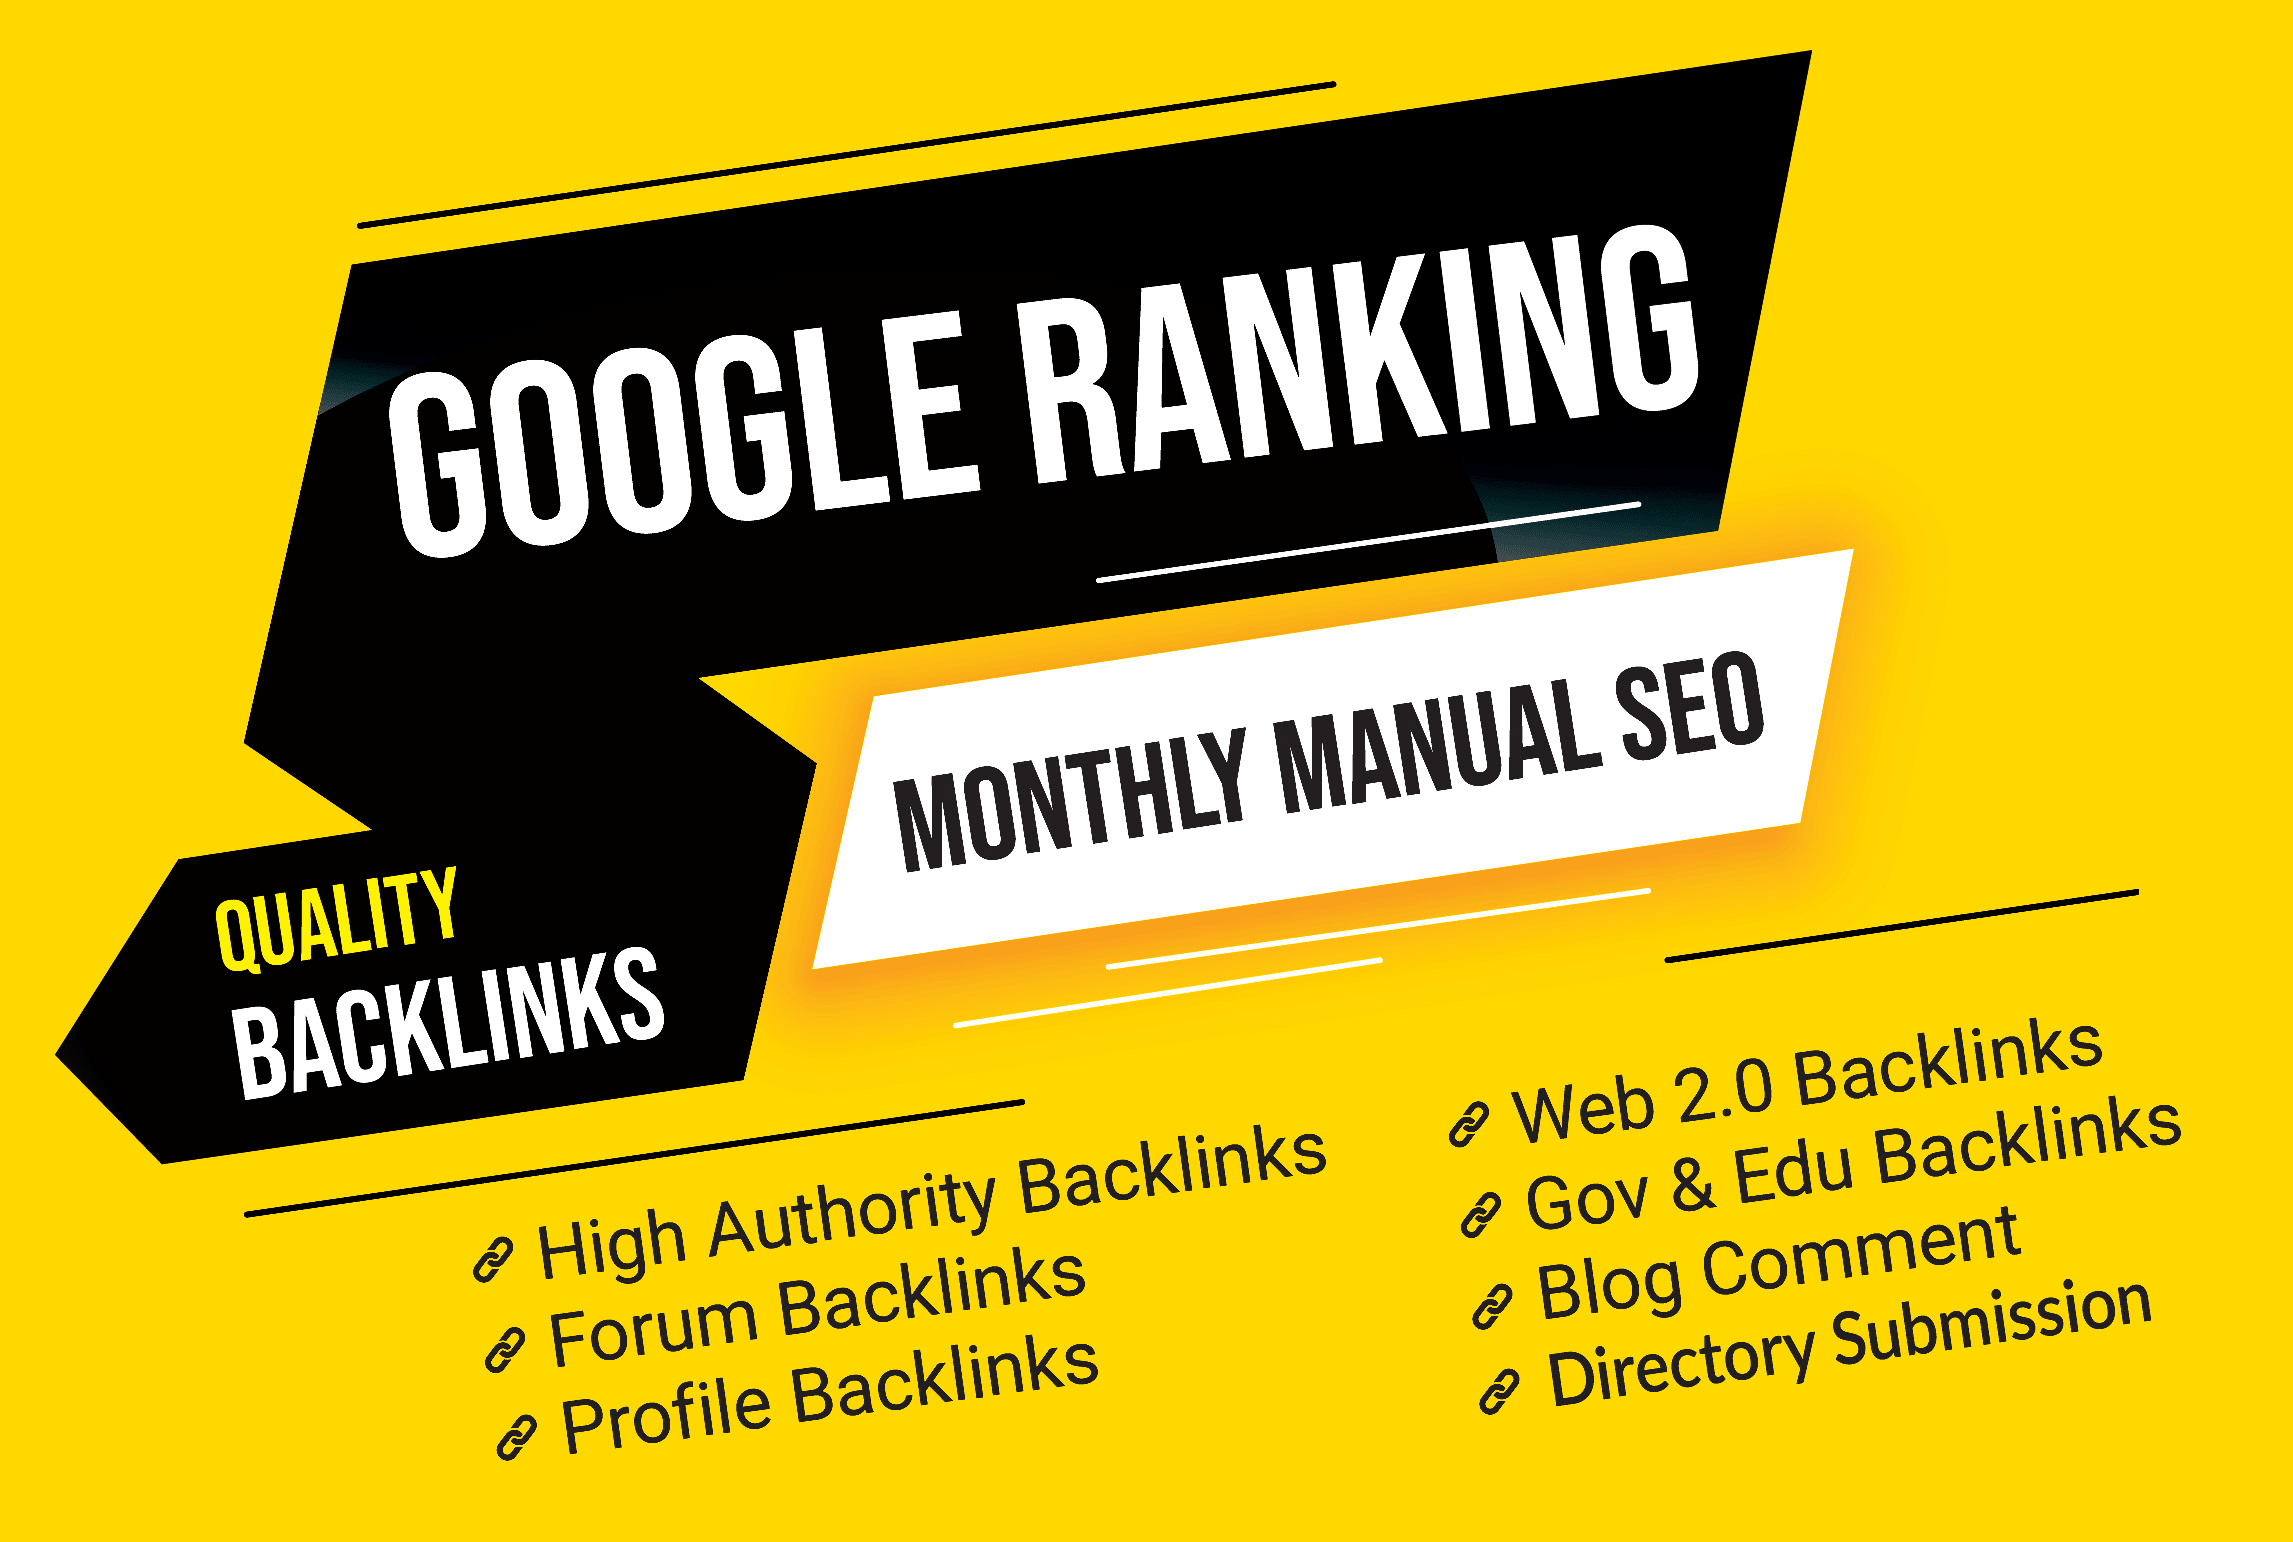 Boost Google Ranking With index-able HQ Manual Seo Backlinks, Monthly seo service